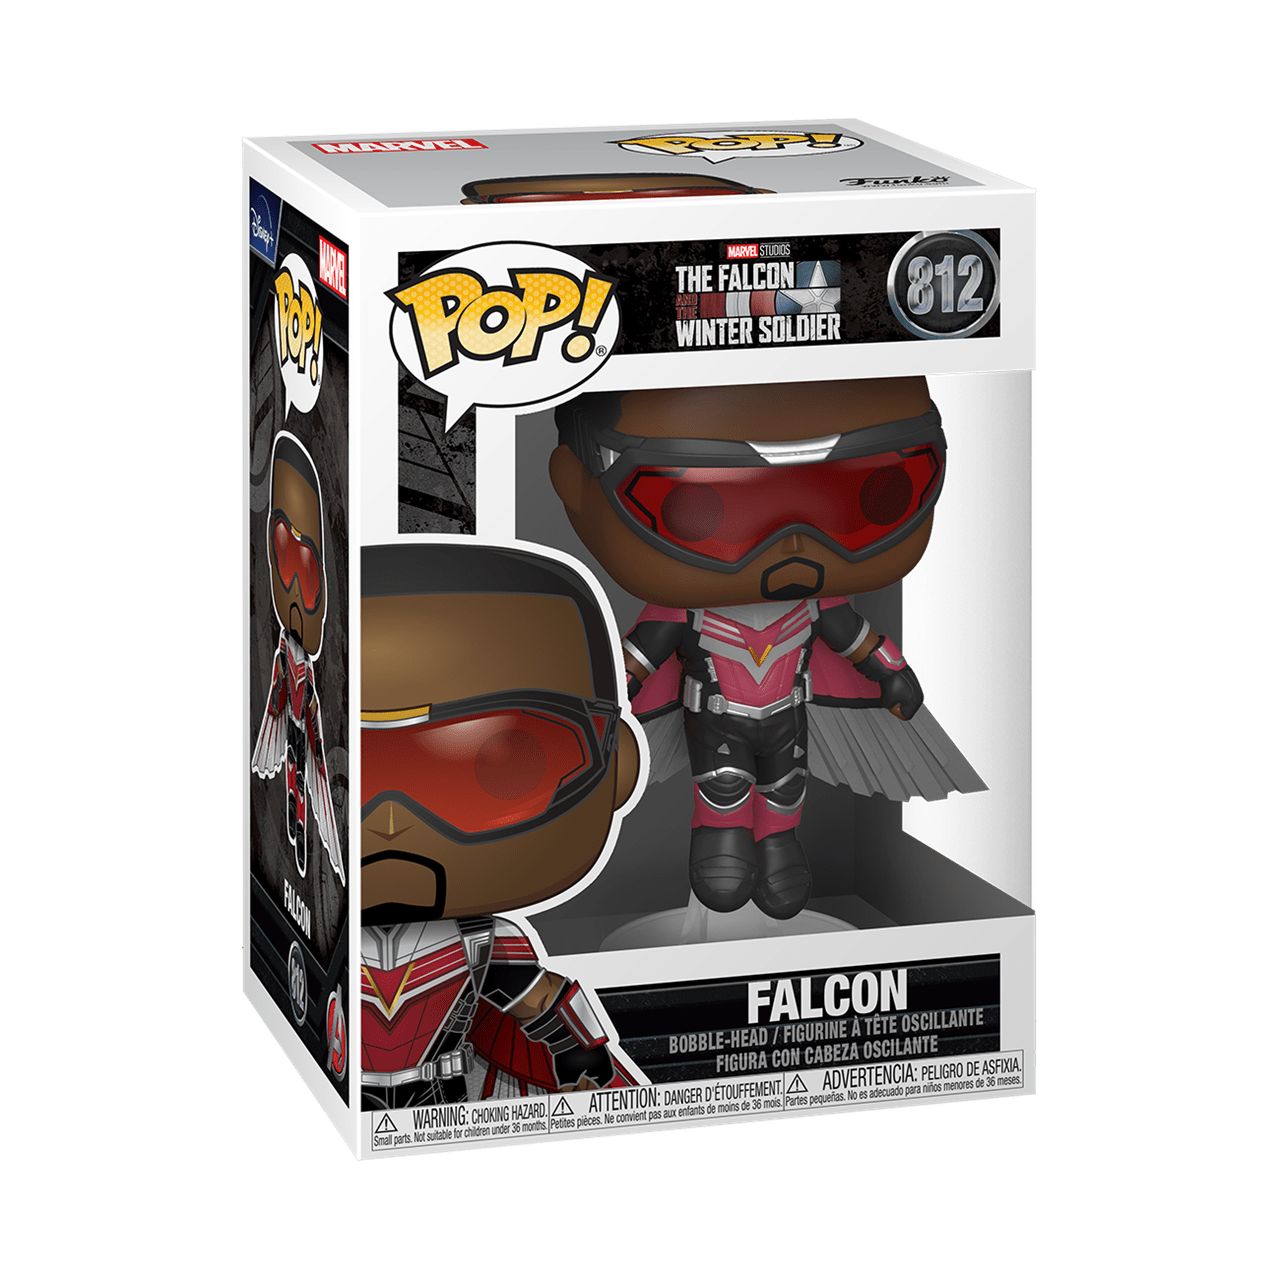 Flying Falcon (812) The Falcon & Winter Soldier: Marvel Pop Vinyl - 2